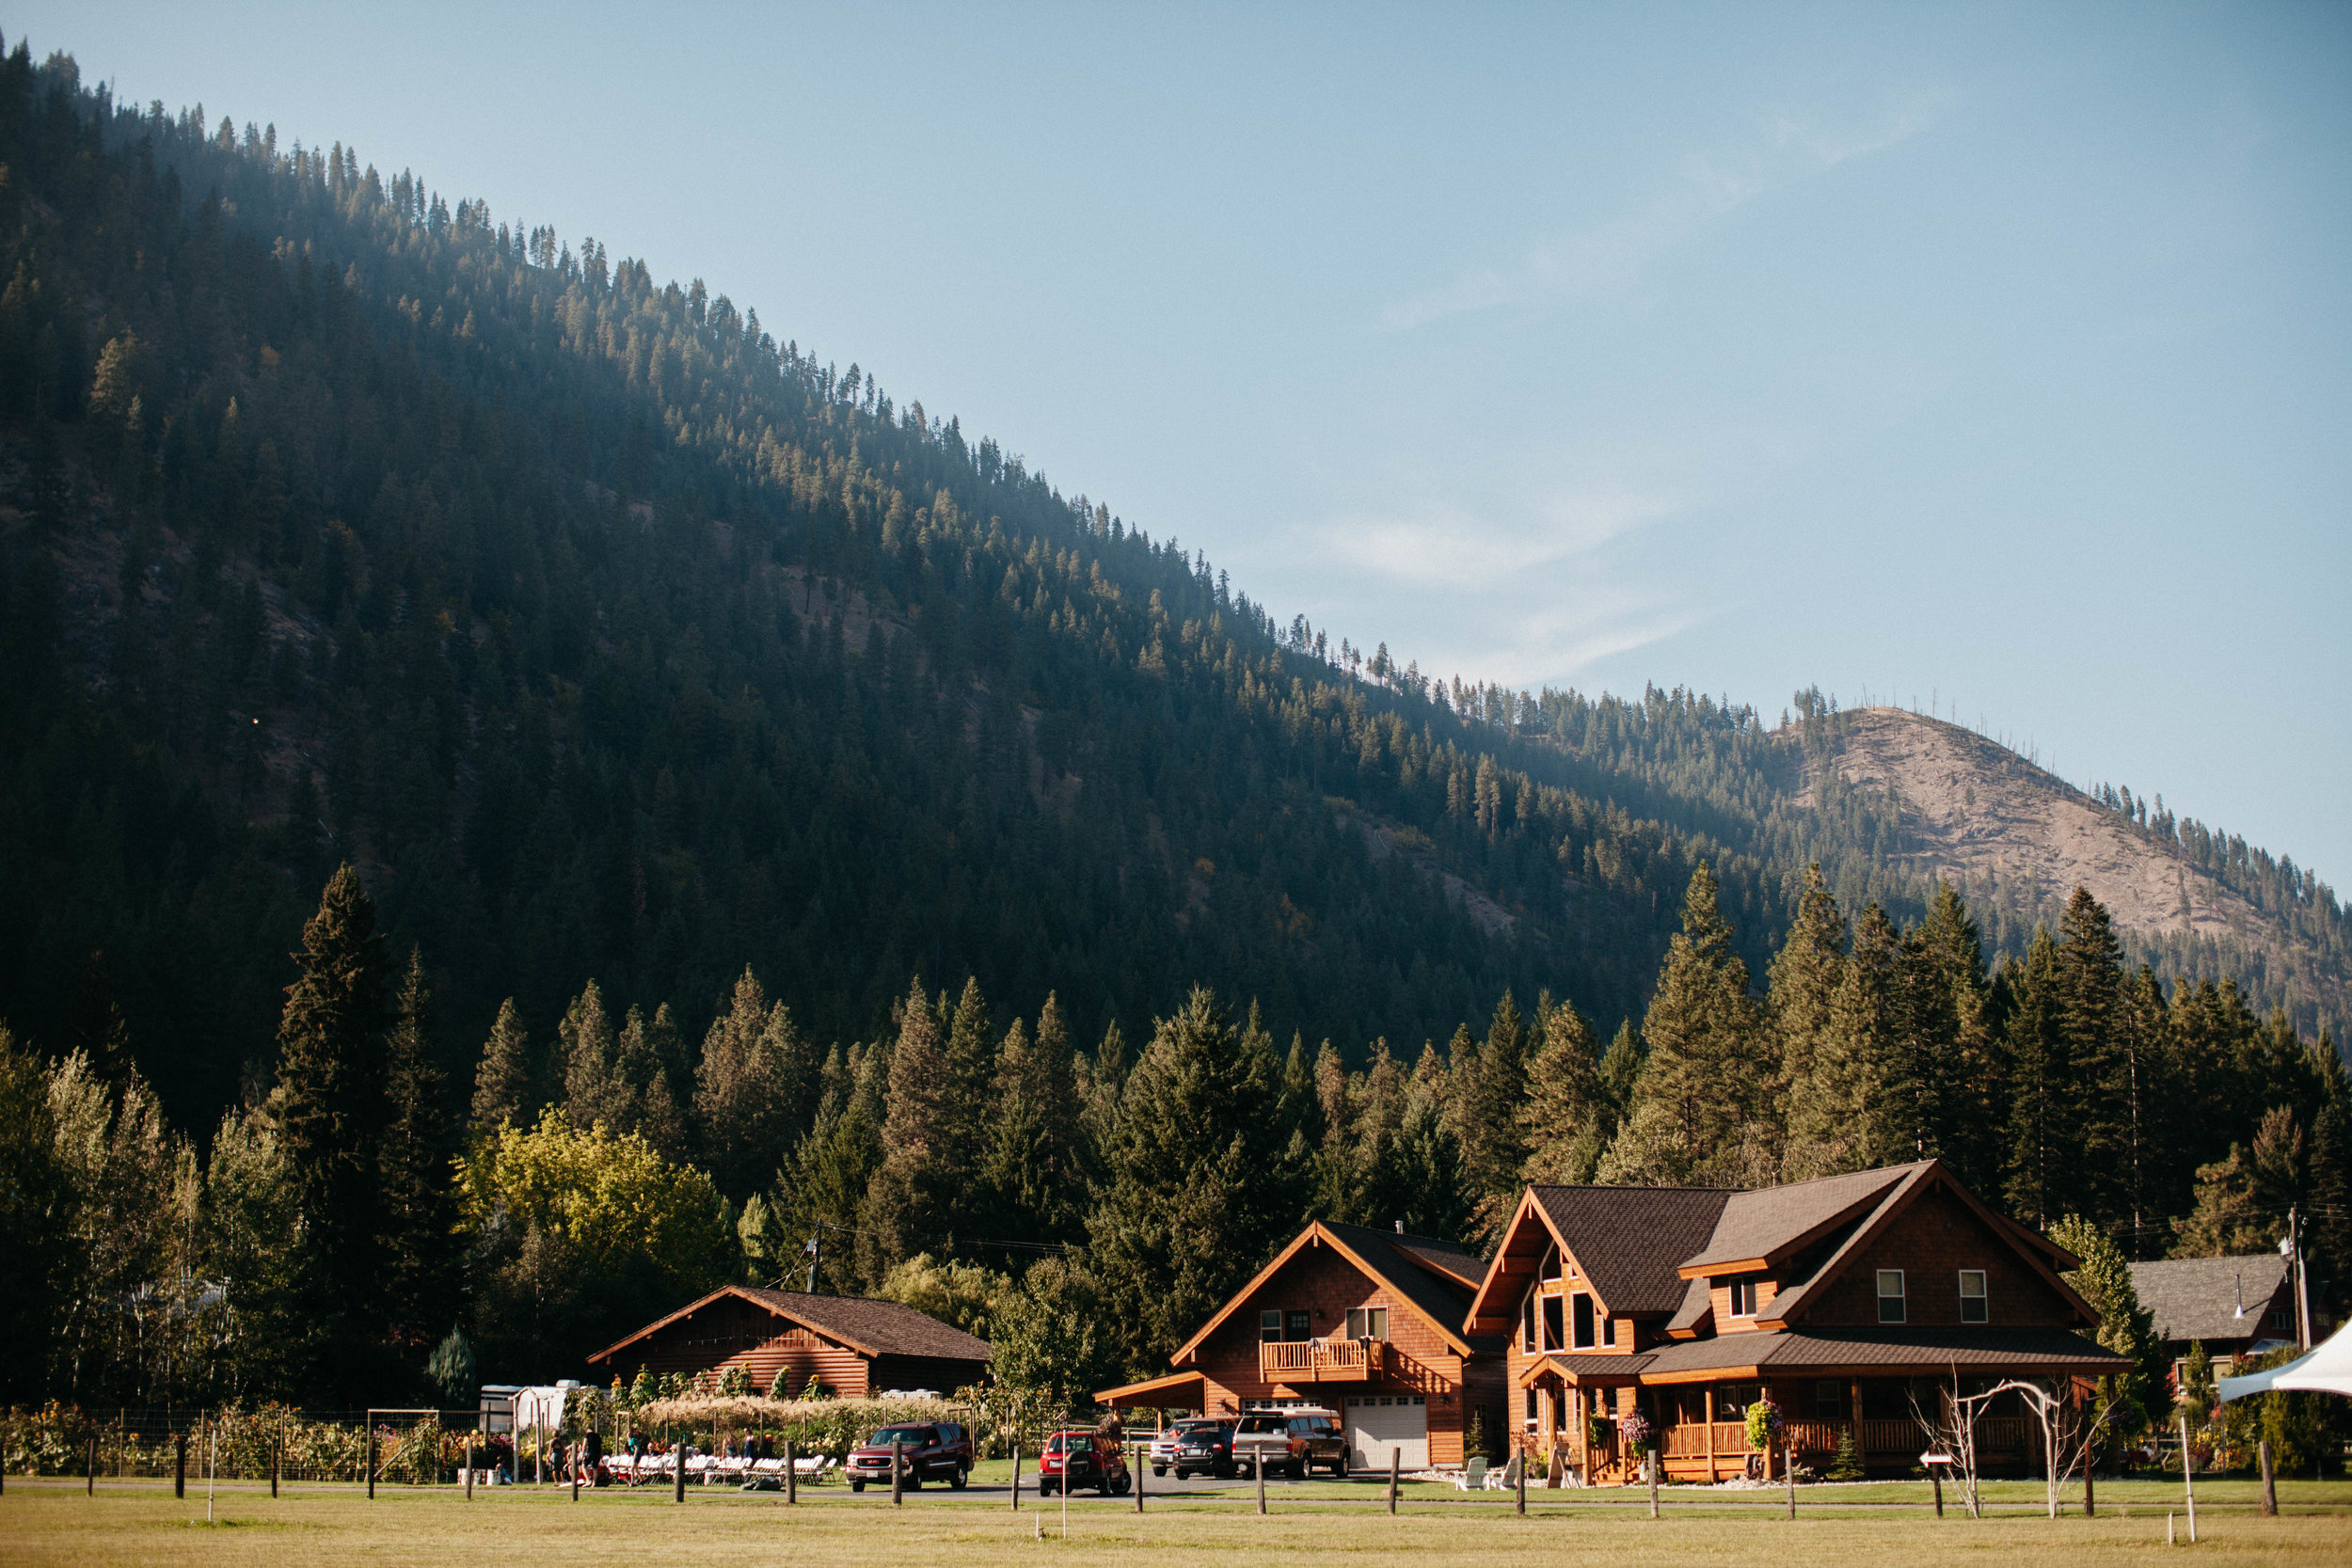 The Lookout VRBO in Leavenworth, WA